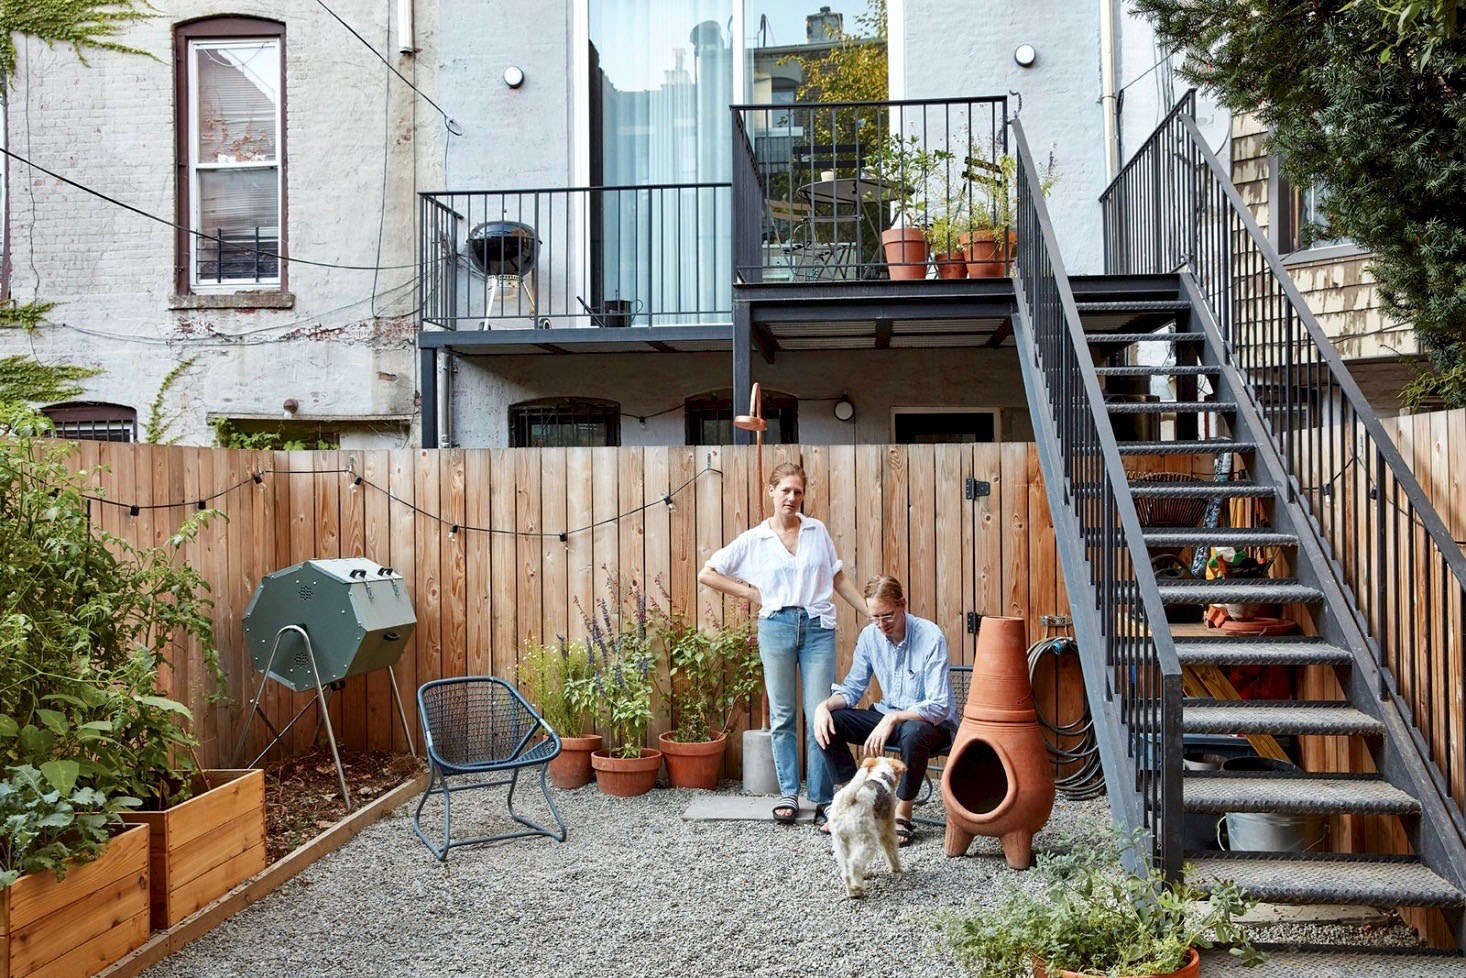 A Joraform Compost Tumbler, left, makes it easier to compost. Photograph by Jonathan Hökklo, from Sustainable Solutions: A Modern Garden for a Historic Townhouse in Brooklyn.